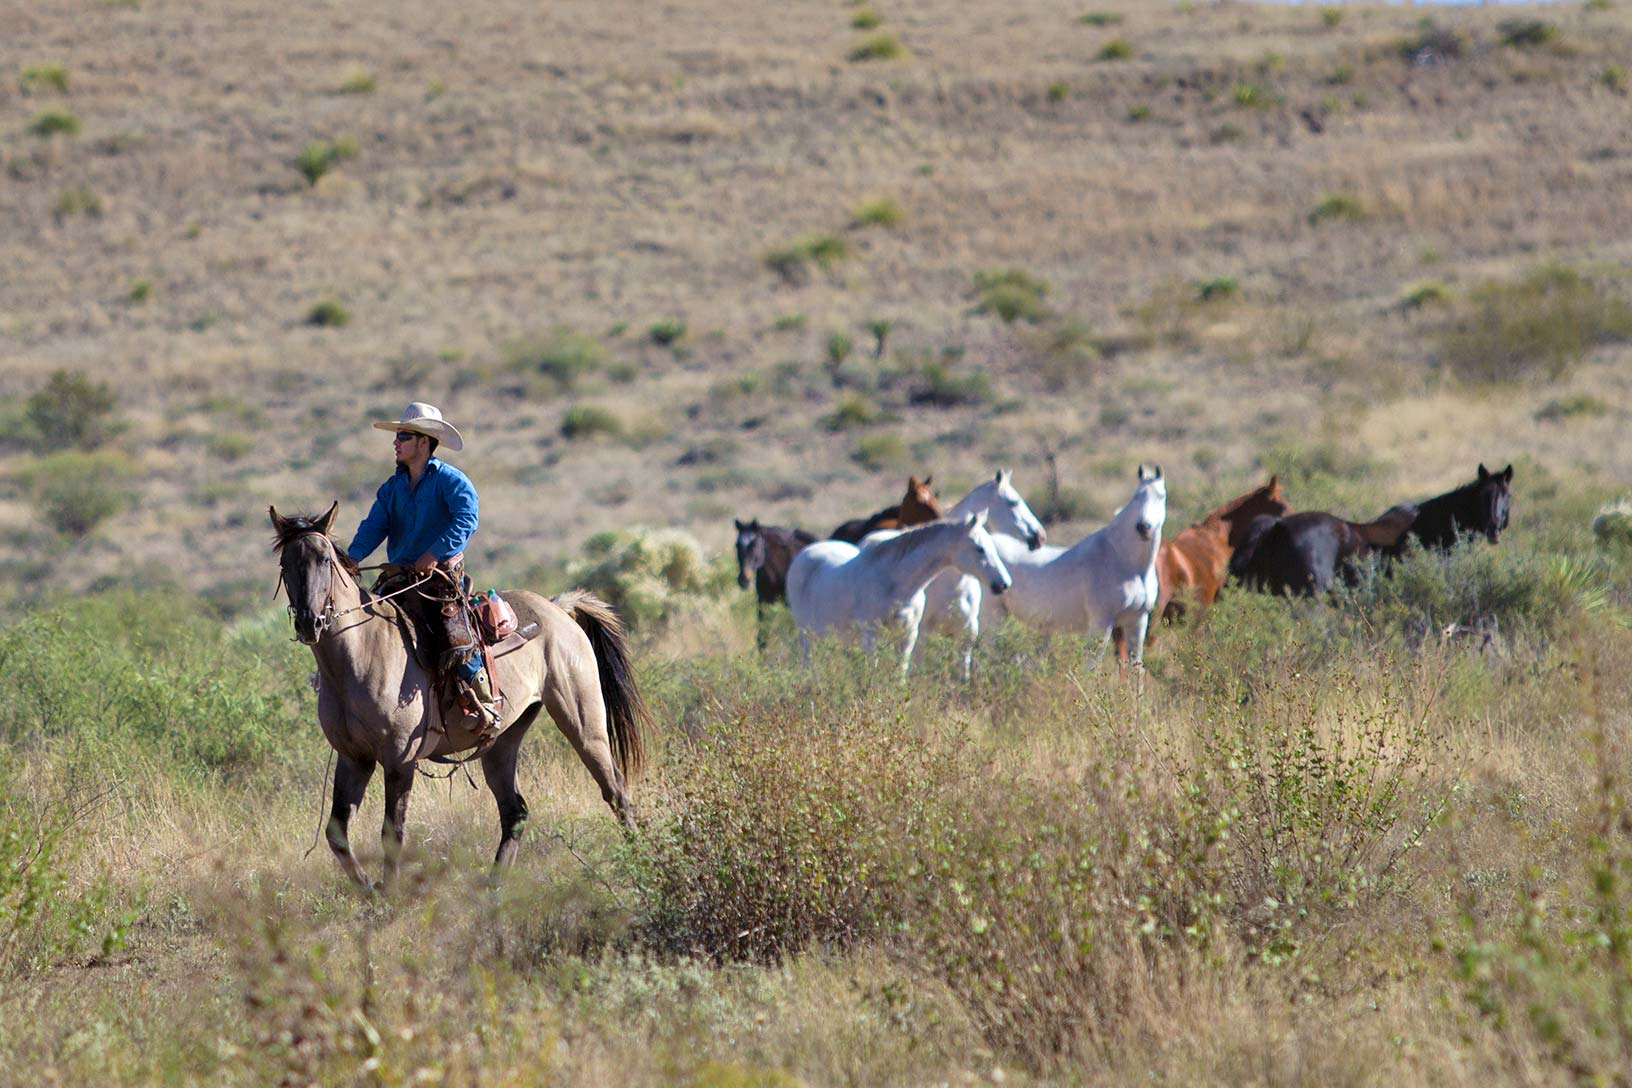 Rockafella and Luis moving horses to another pasture